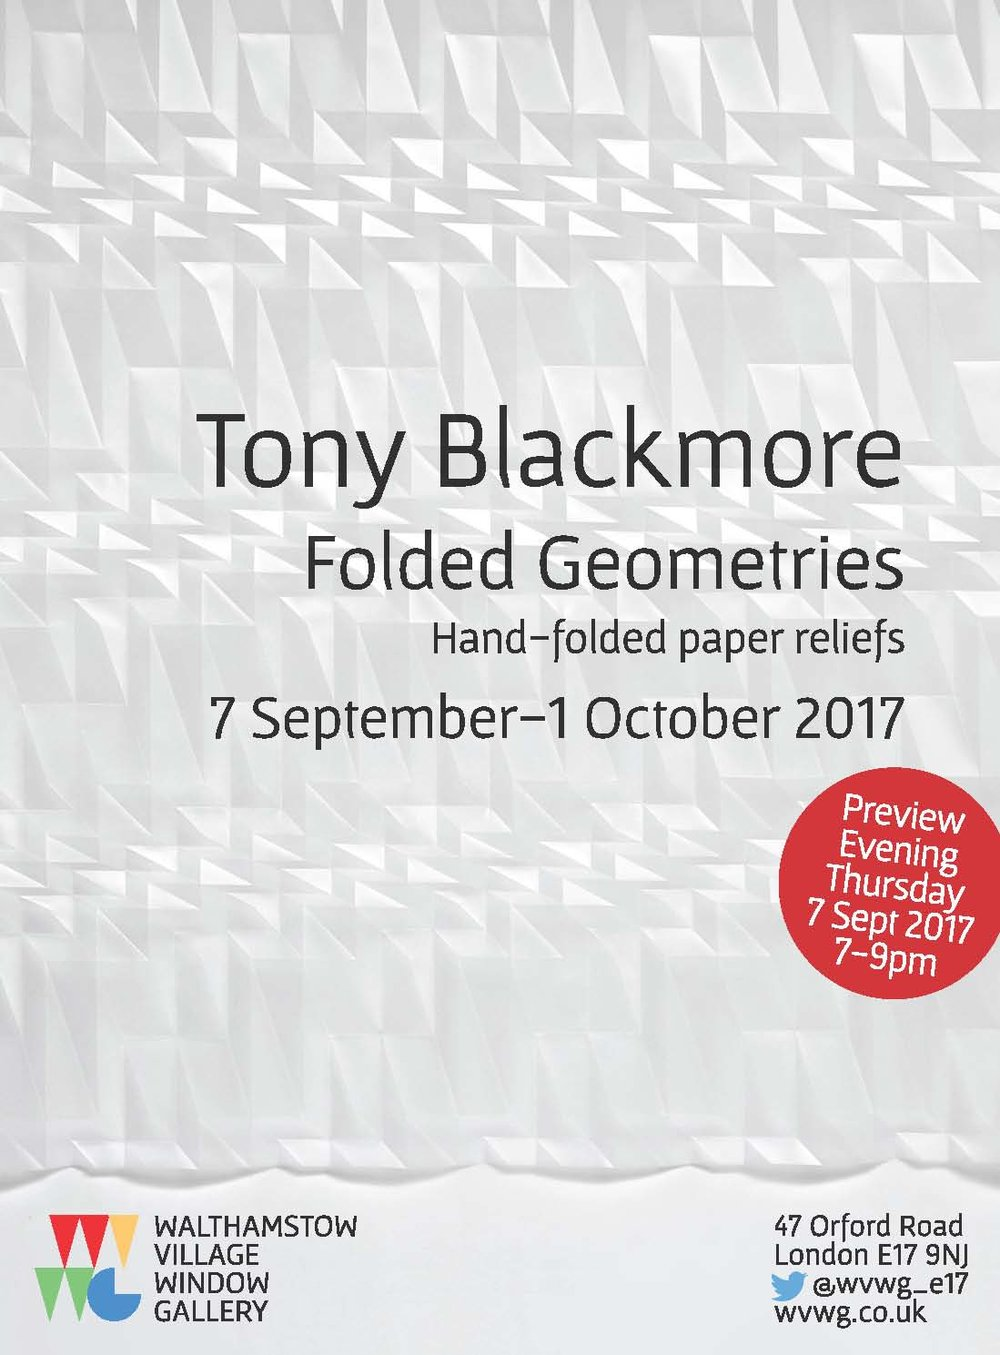 TONY-BLACKMORE-2017-WVWG_93x126mm FINAL no bleed.jpg